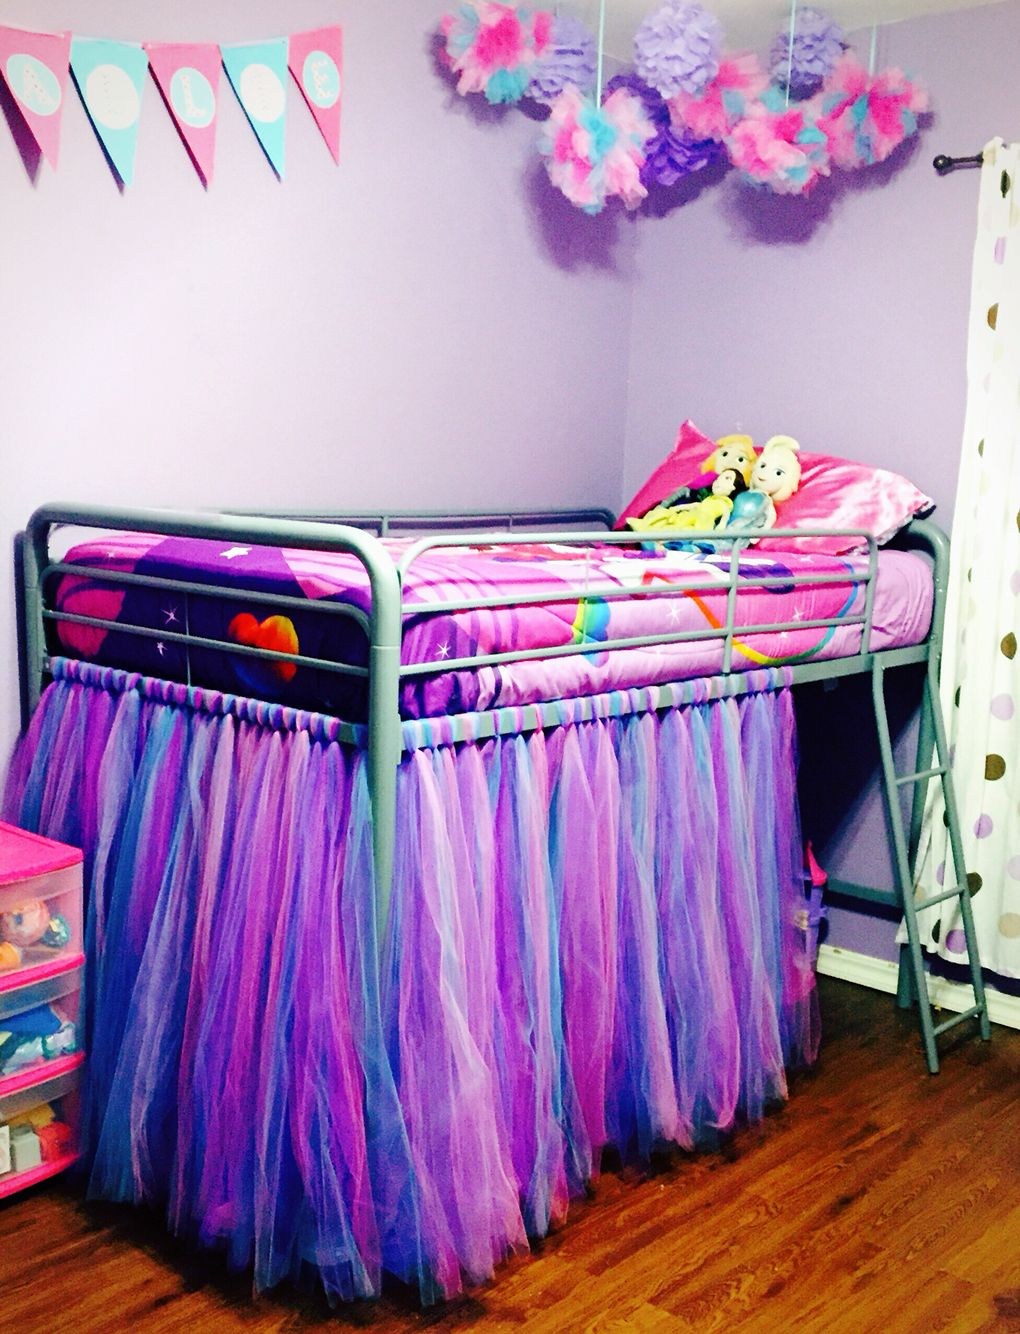 Loft Bed With Tulle Tutu Skirt Girl S Bedroom